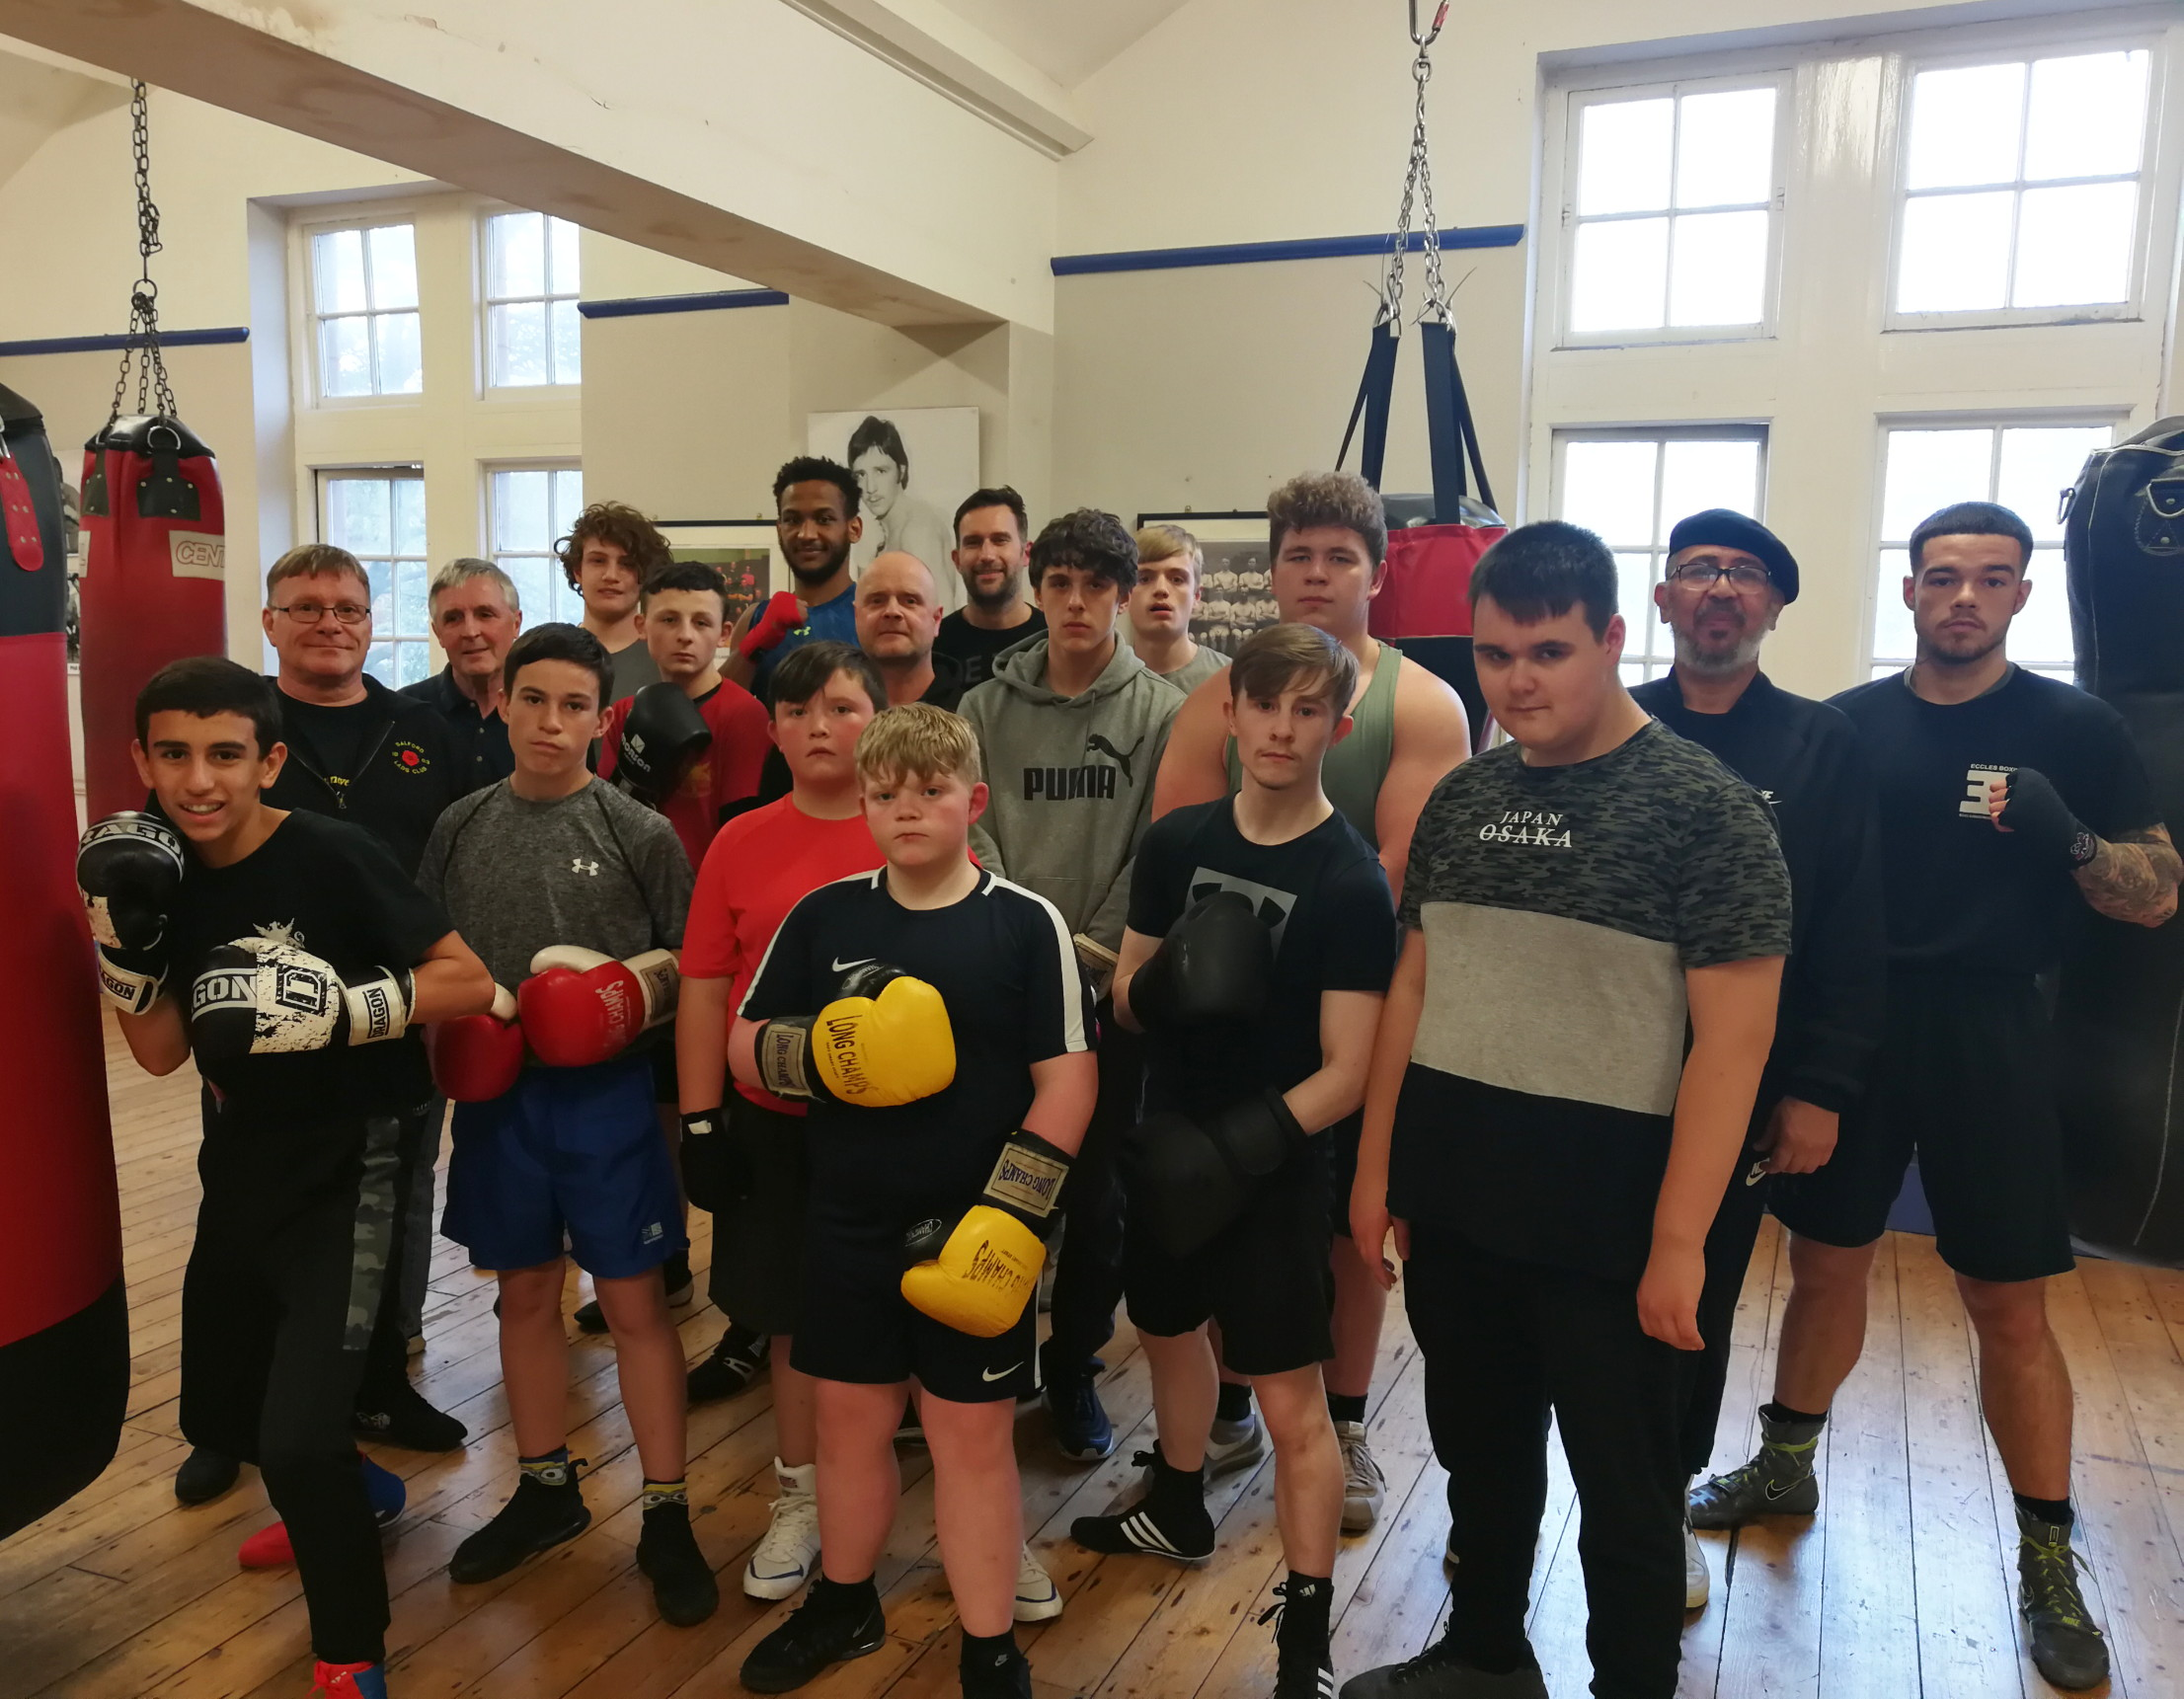 Visit by Eccles Boxing Club